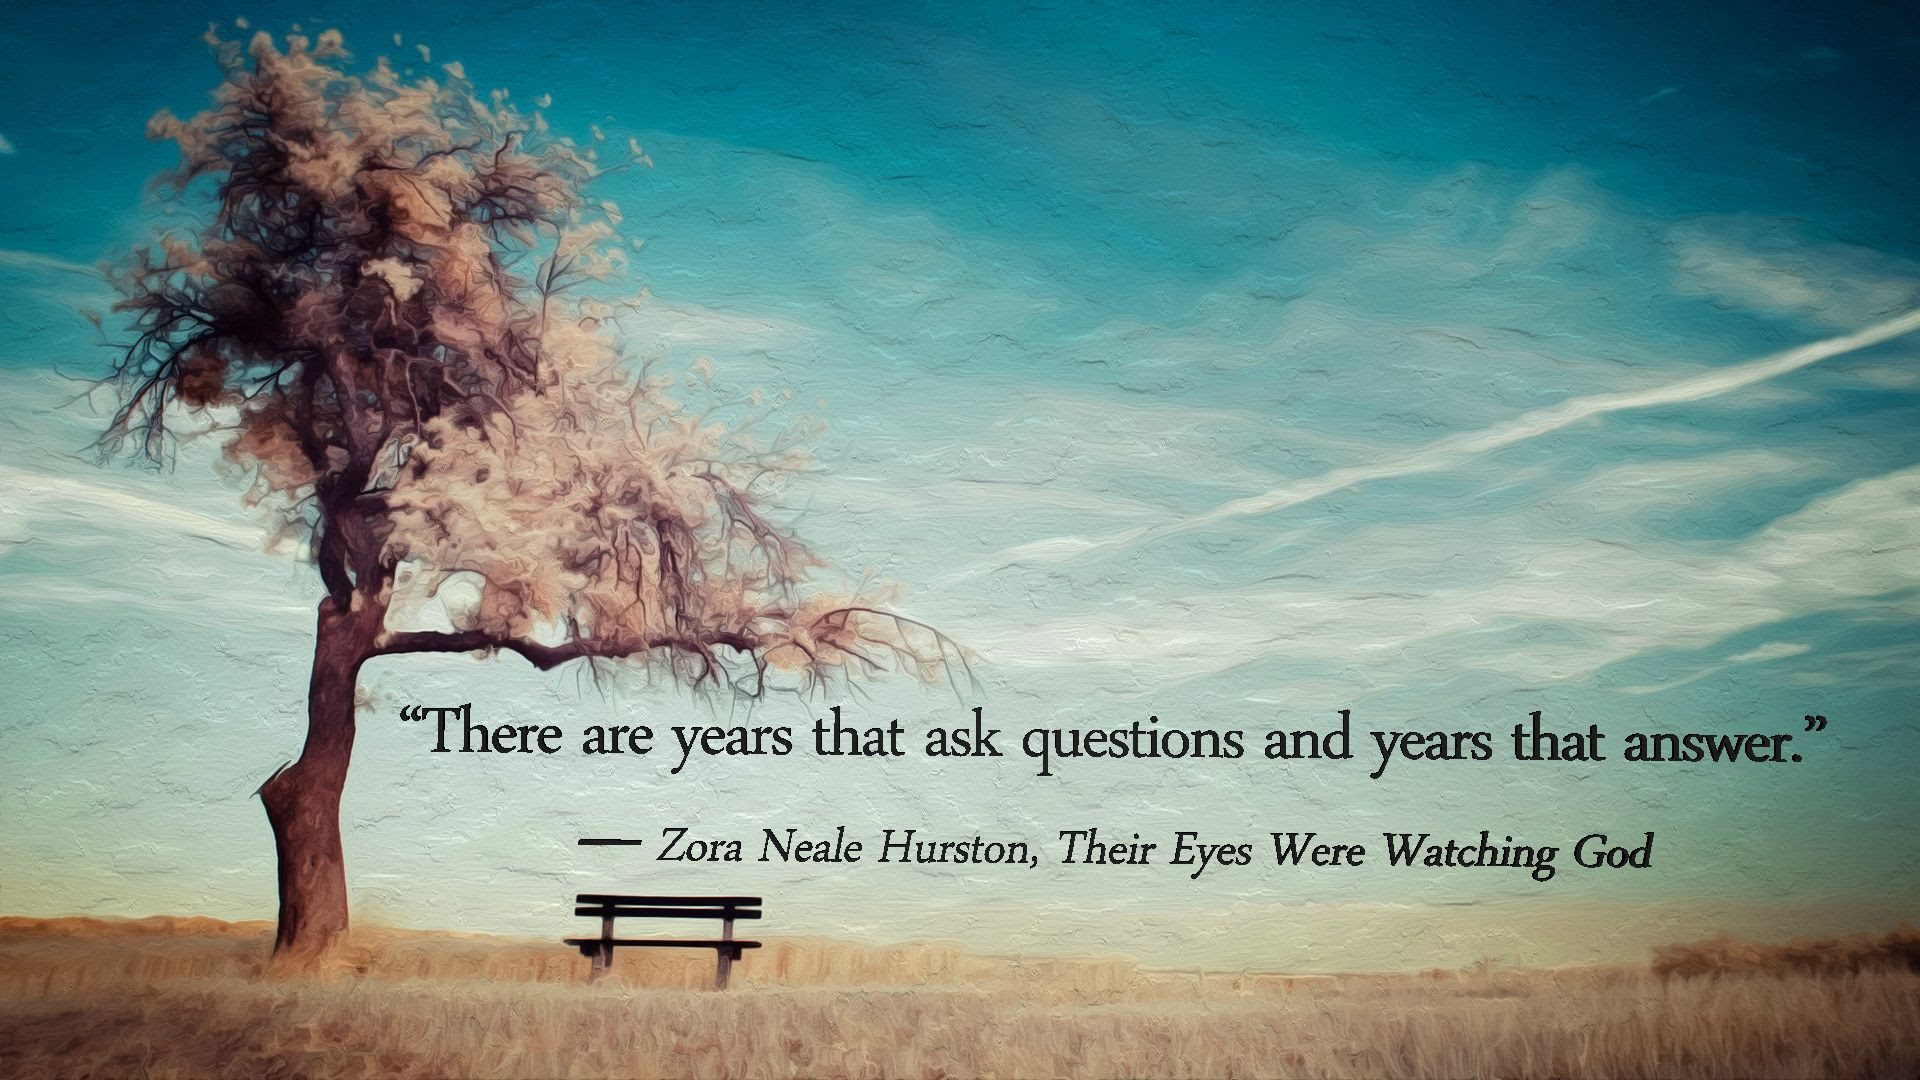 There Are Years Zora Neale Hurston Their Eyes Were Watching God